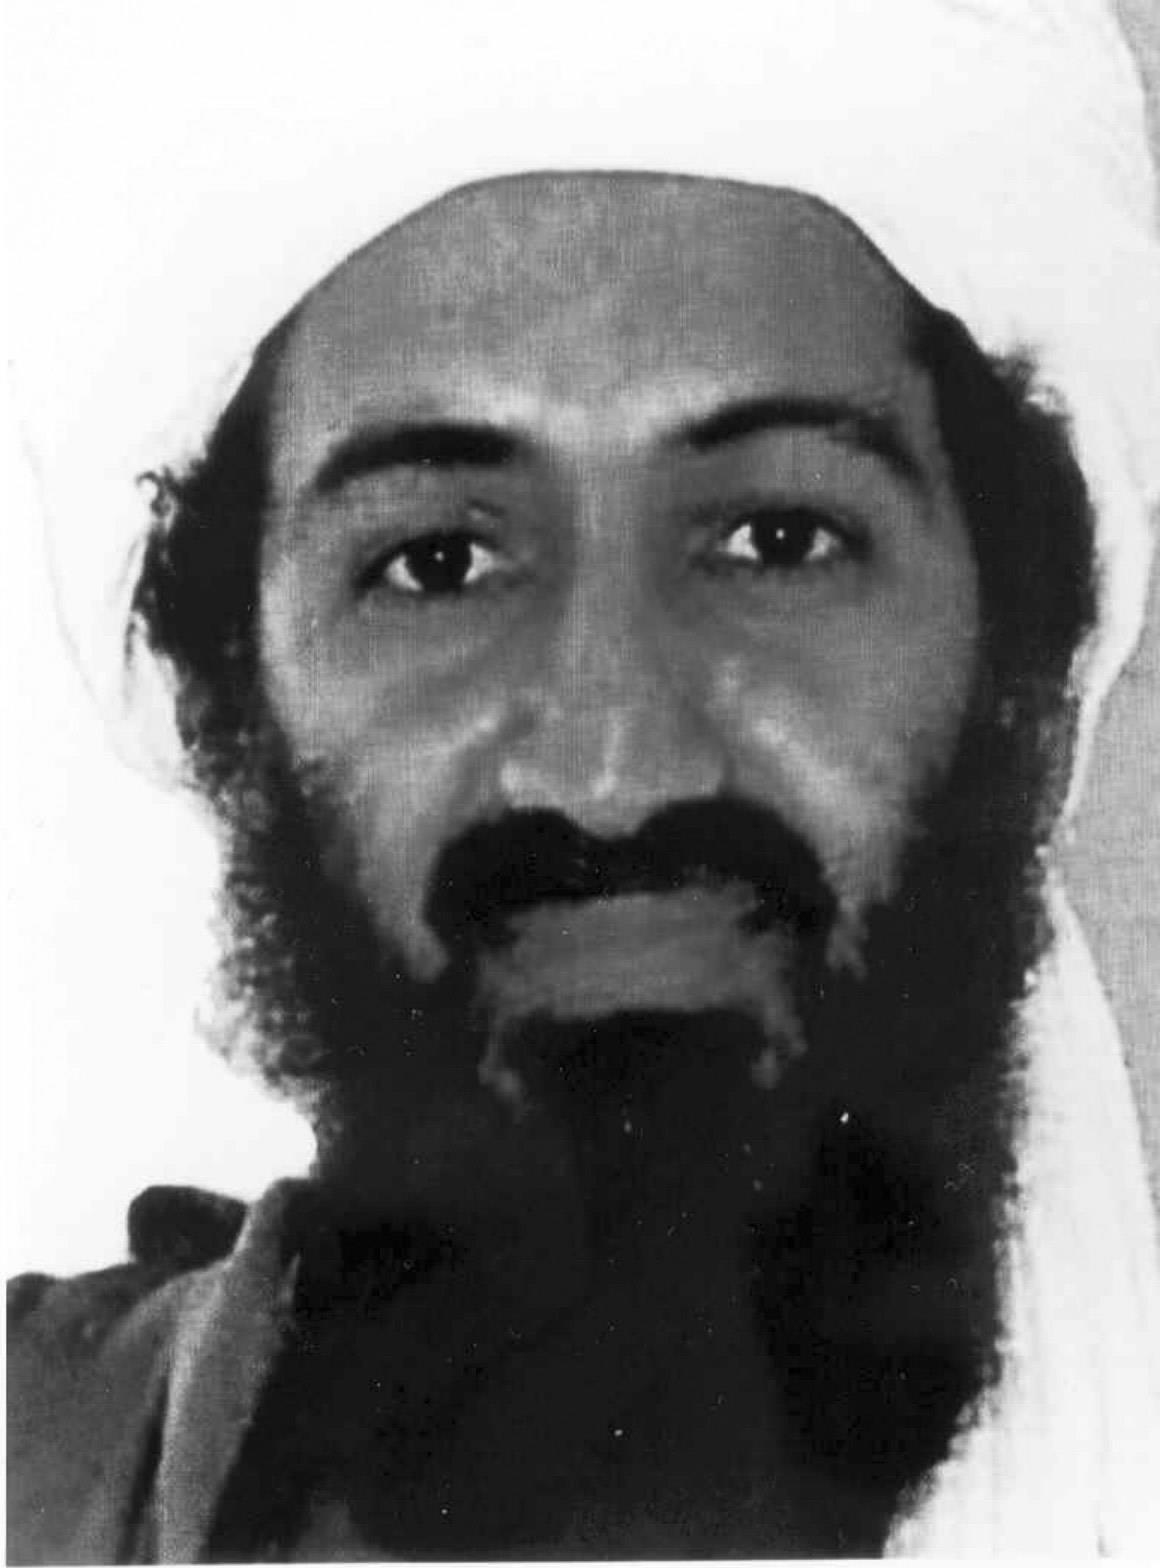 Trump's bin Laden 'Prediction'